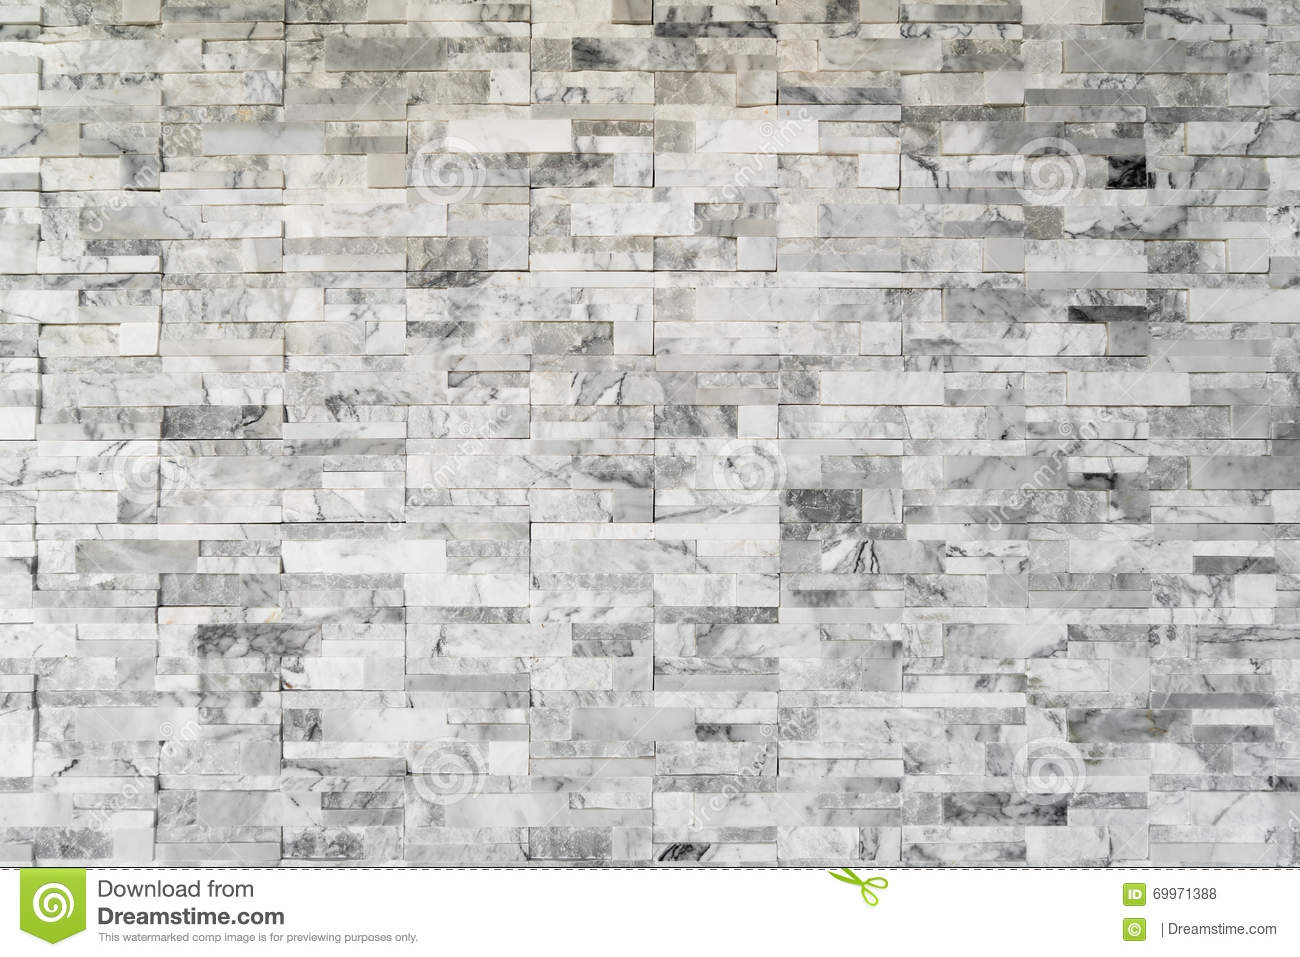 Mur int rieur de texture en pierre photo stock image for Mur interieur en pierre